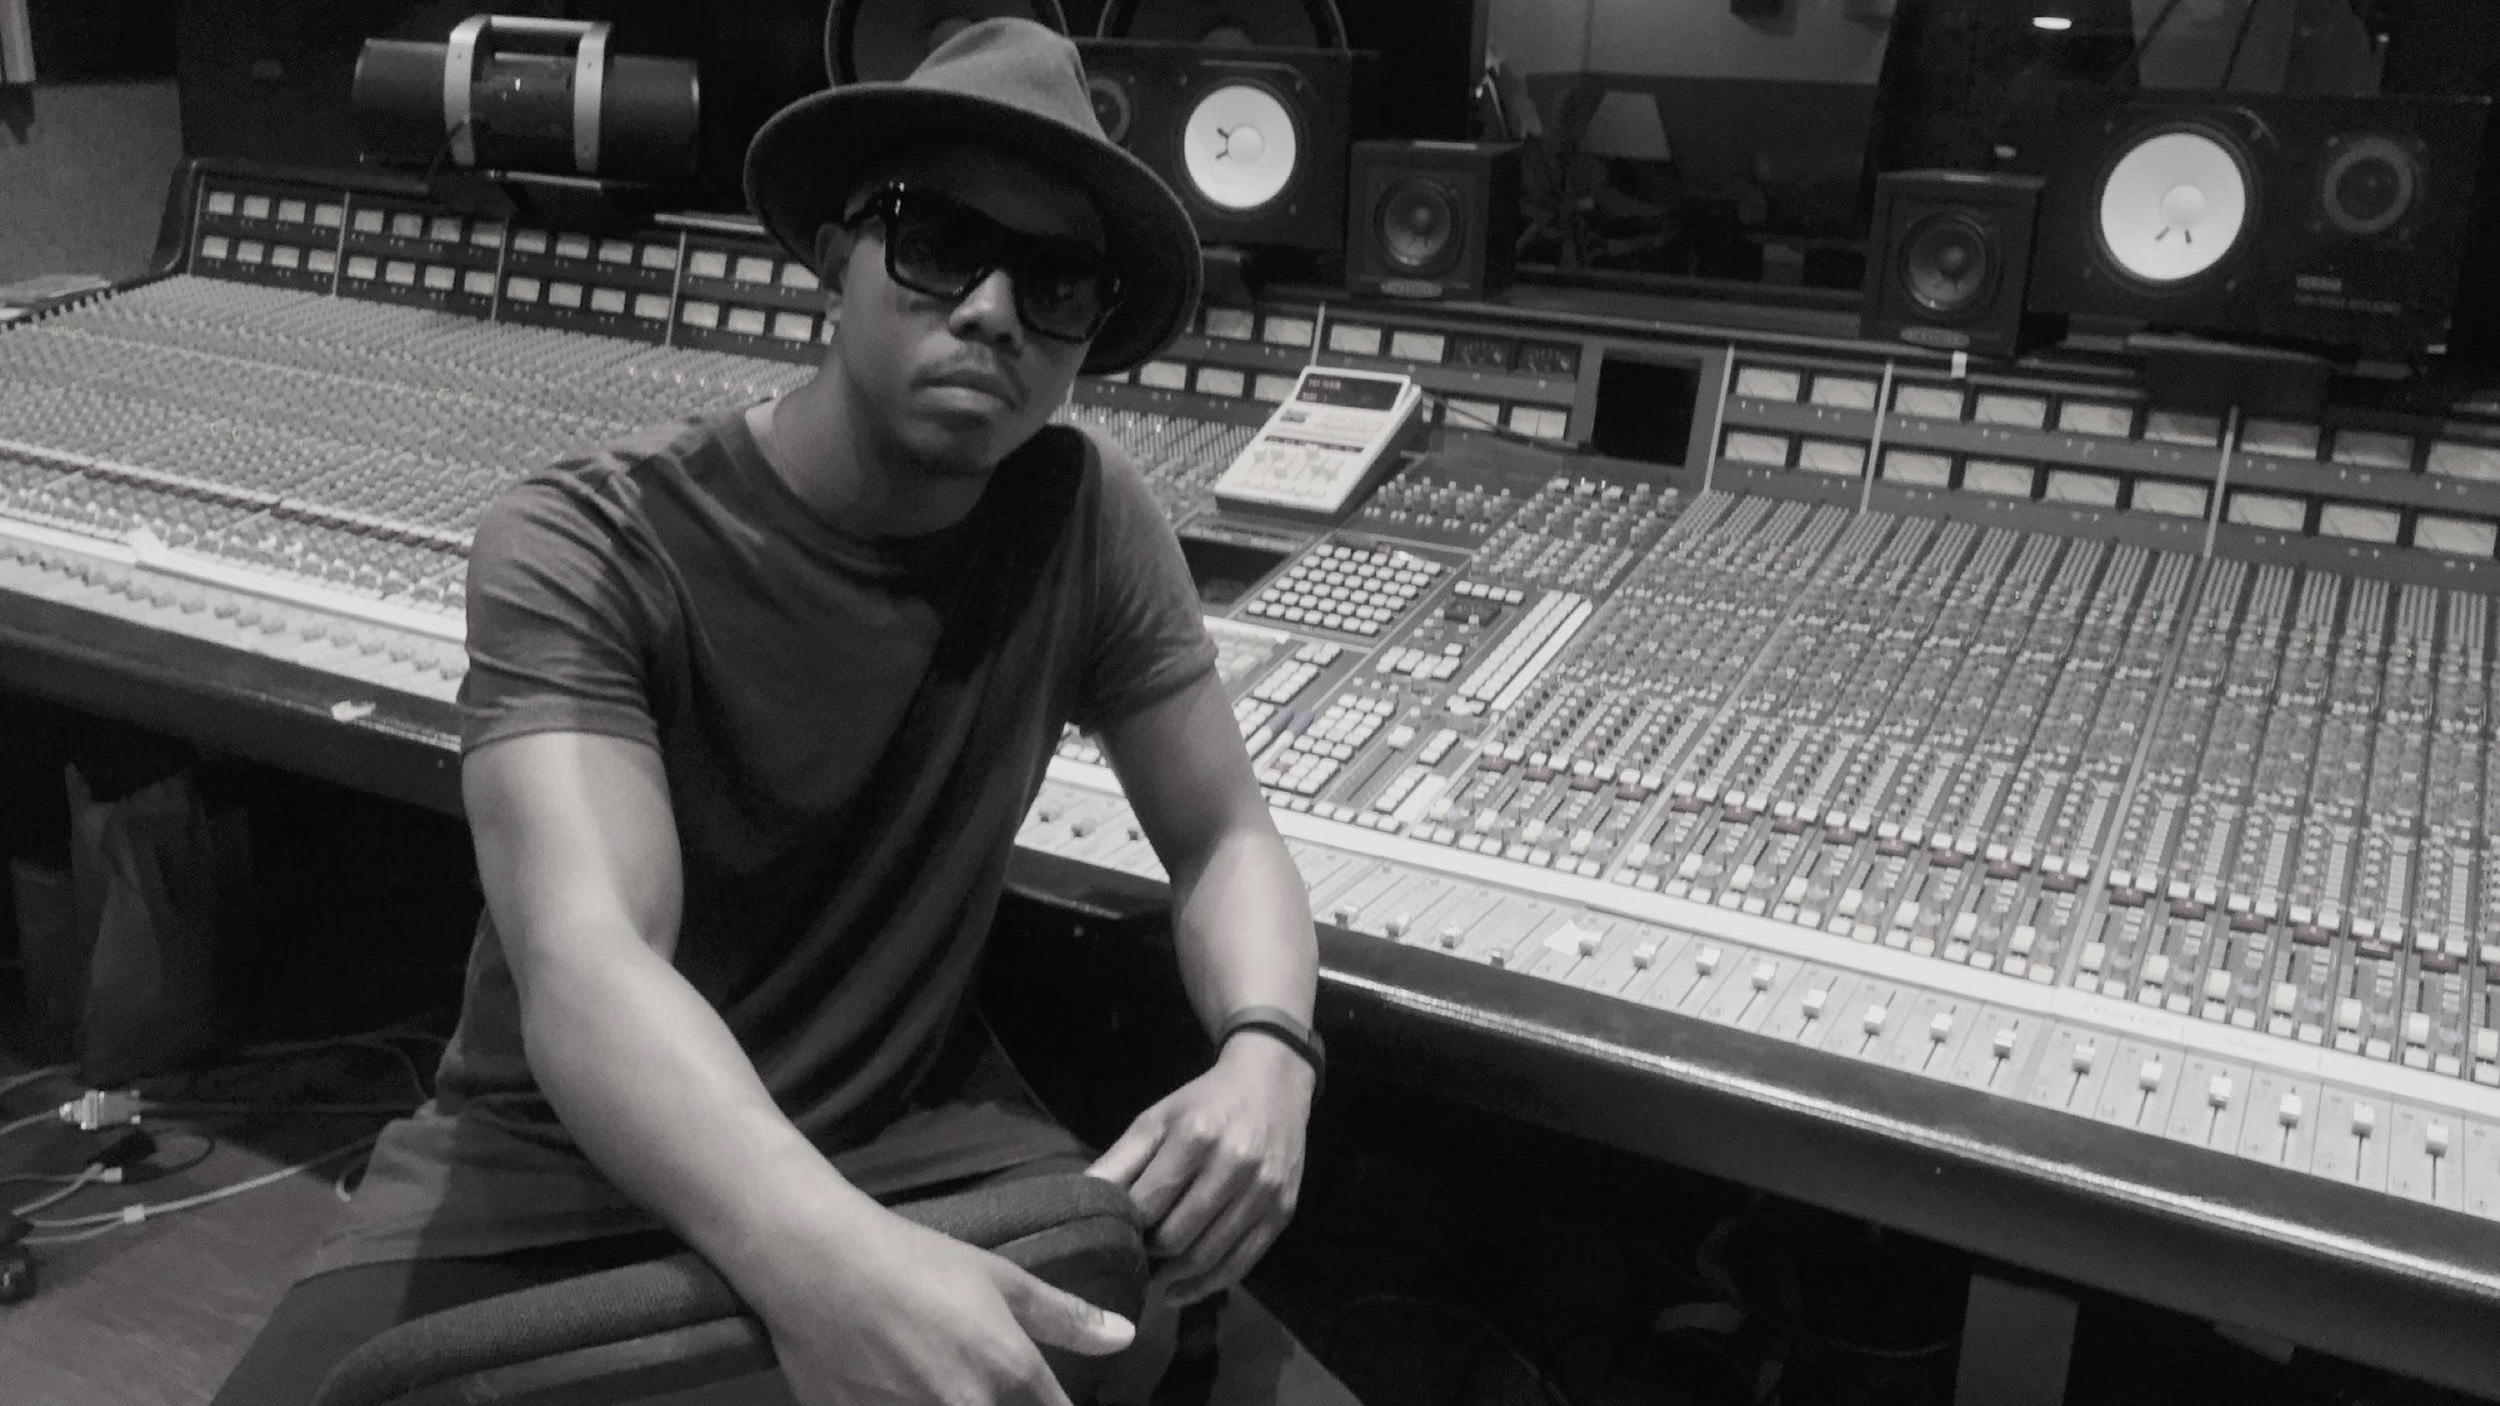 Dj Journey during a recording session with S.C.R.D. and The Klick at Skip Saylor Recording studio in Encino, CA.